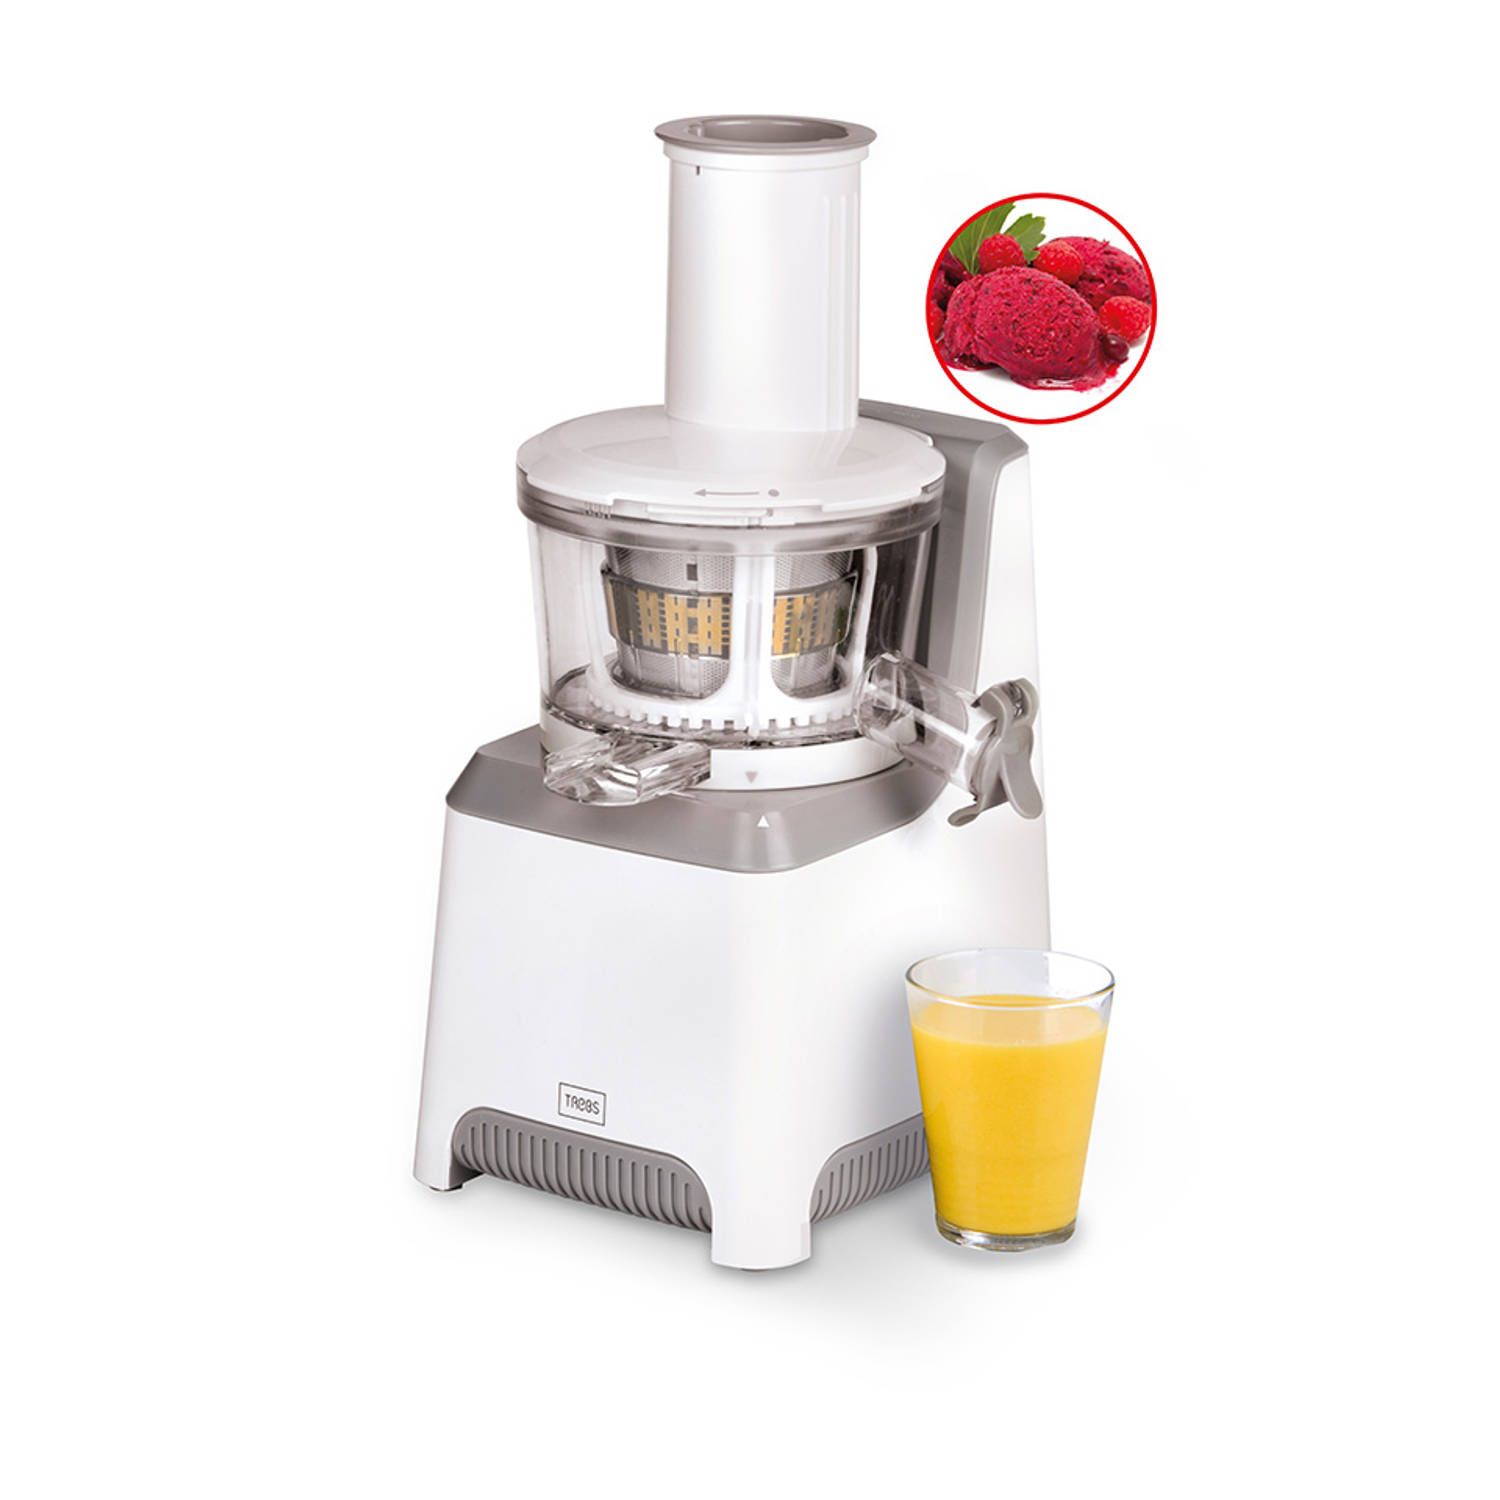 Trebs 99274 slowjuicer